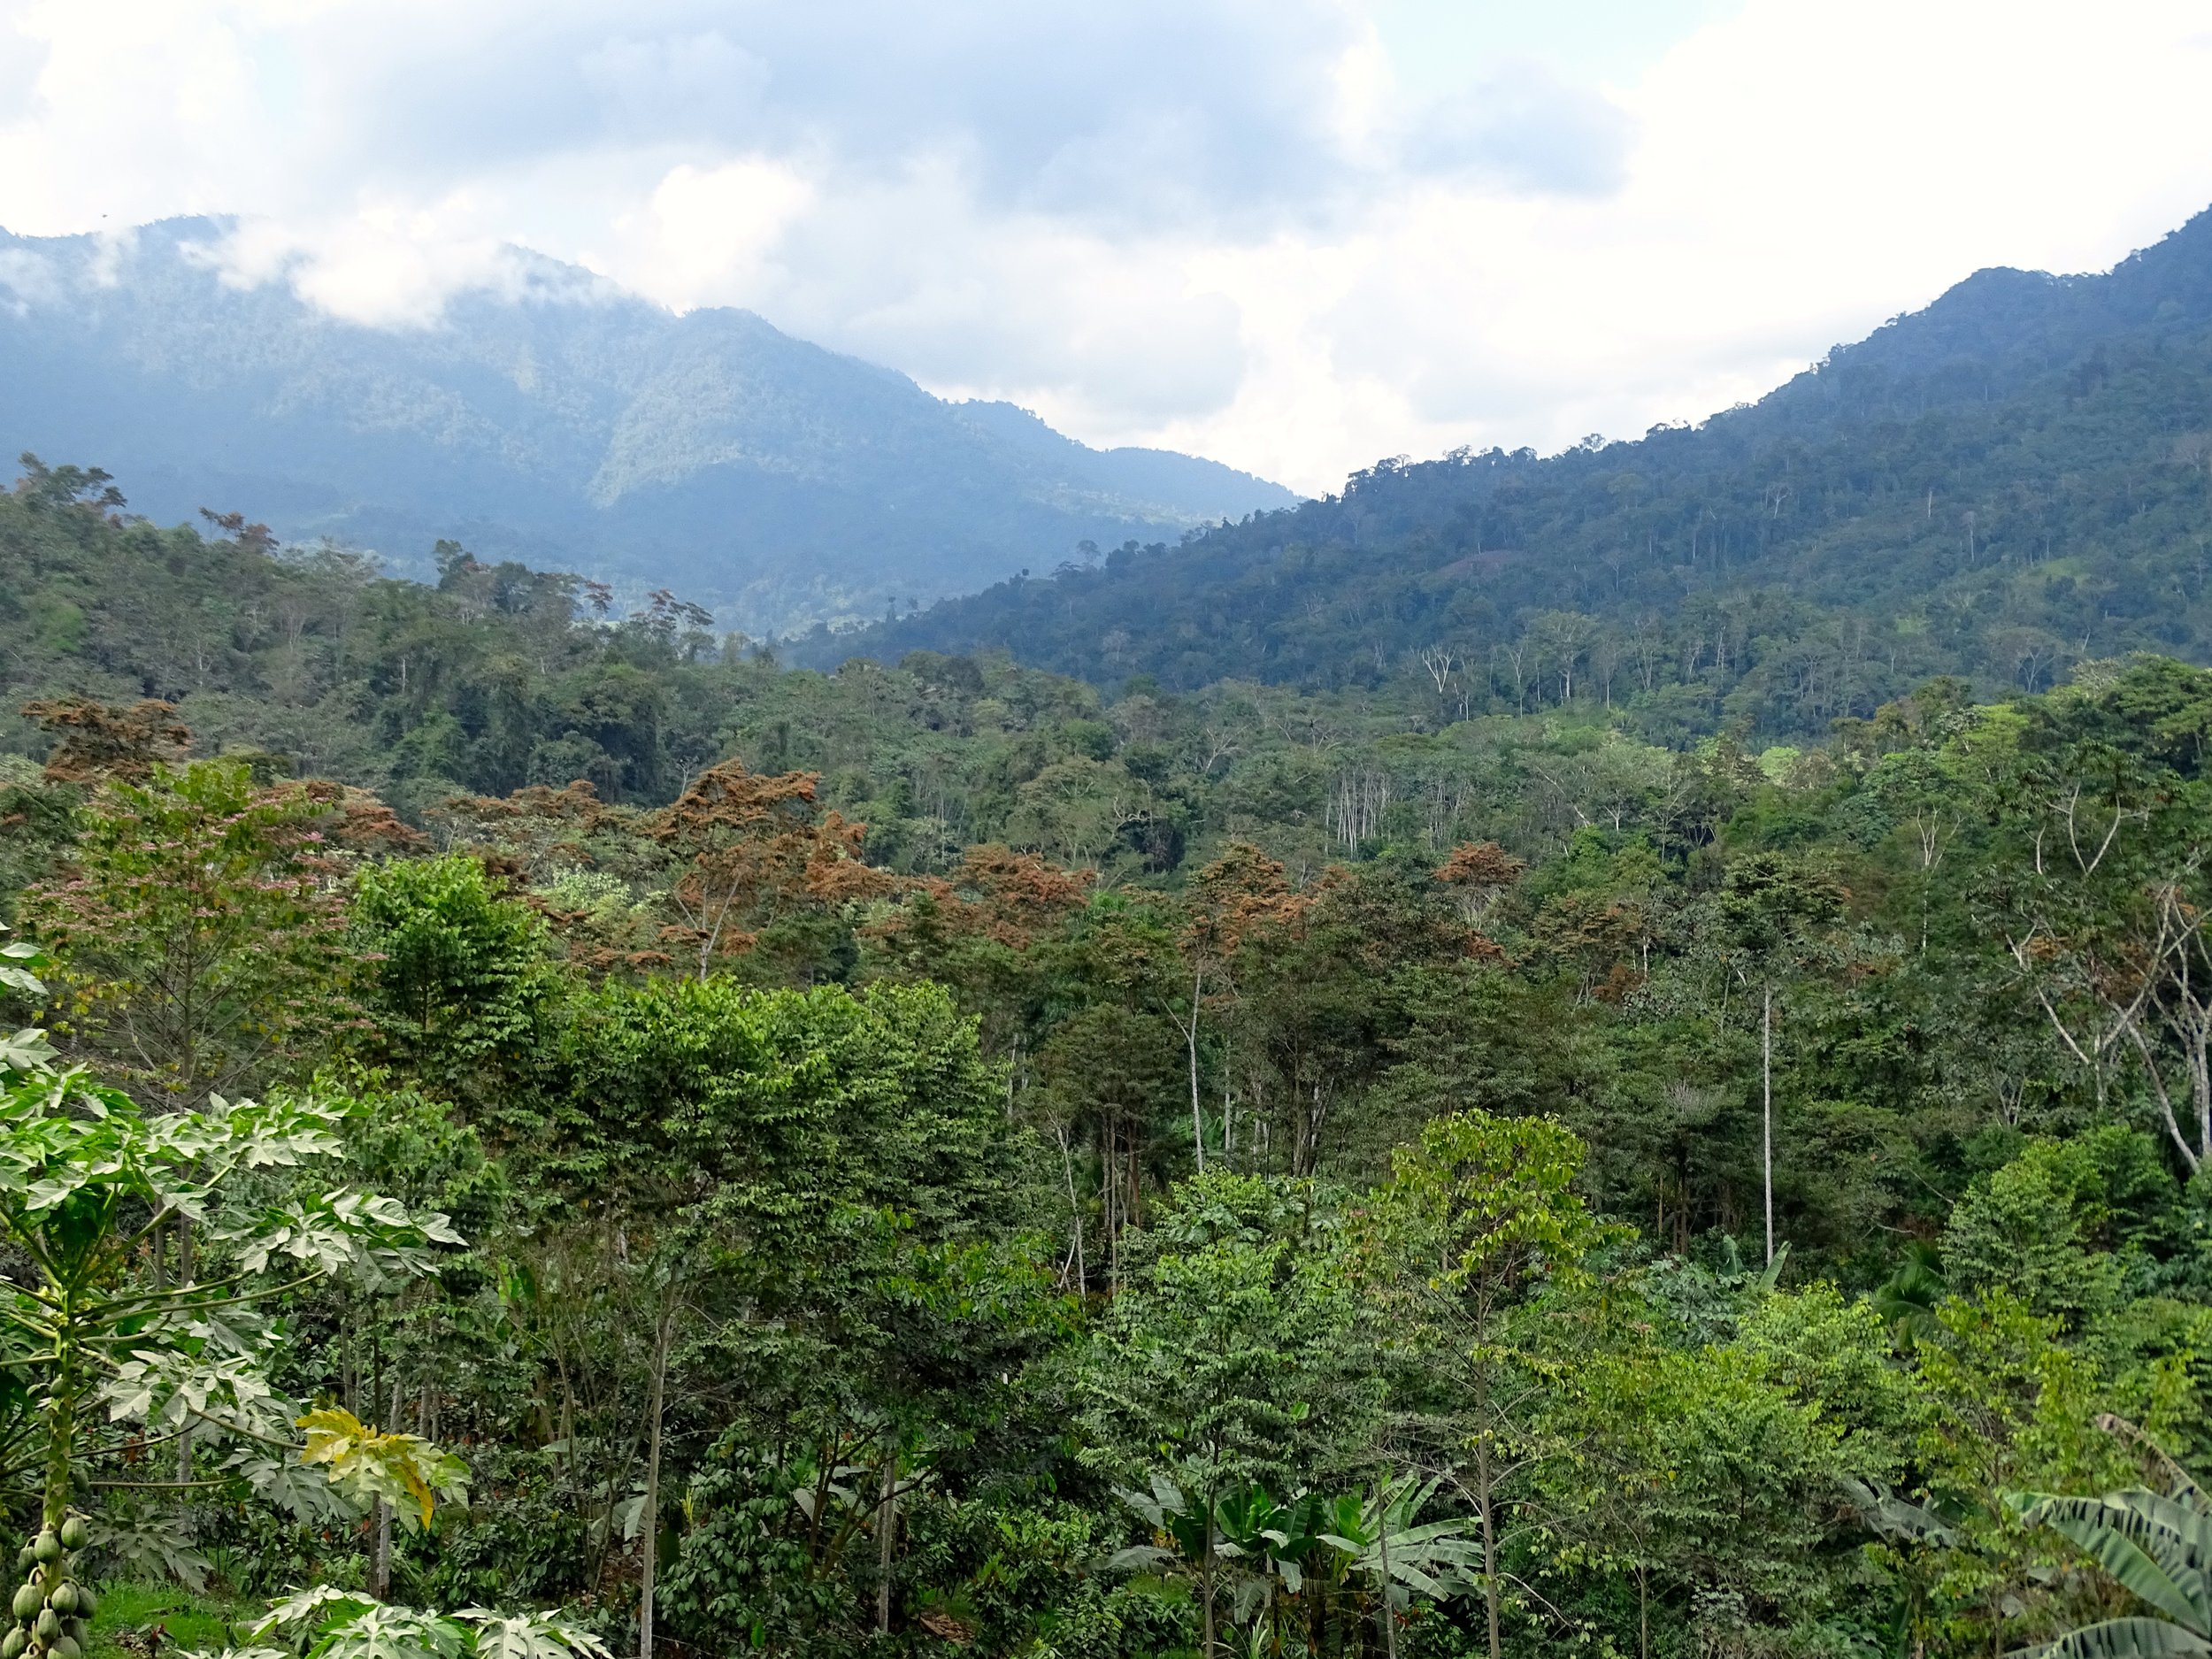 The jungle was dense and lush surrounding us.